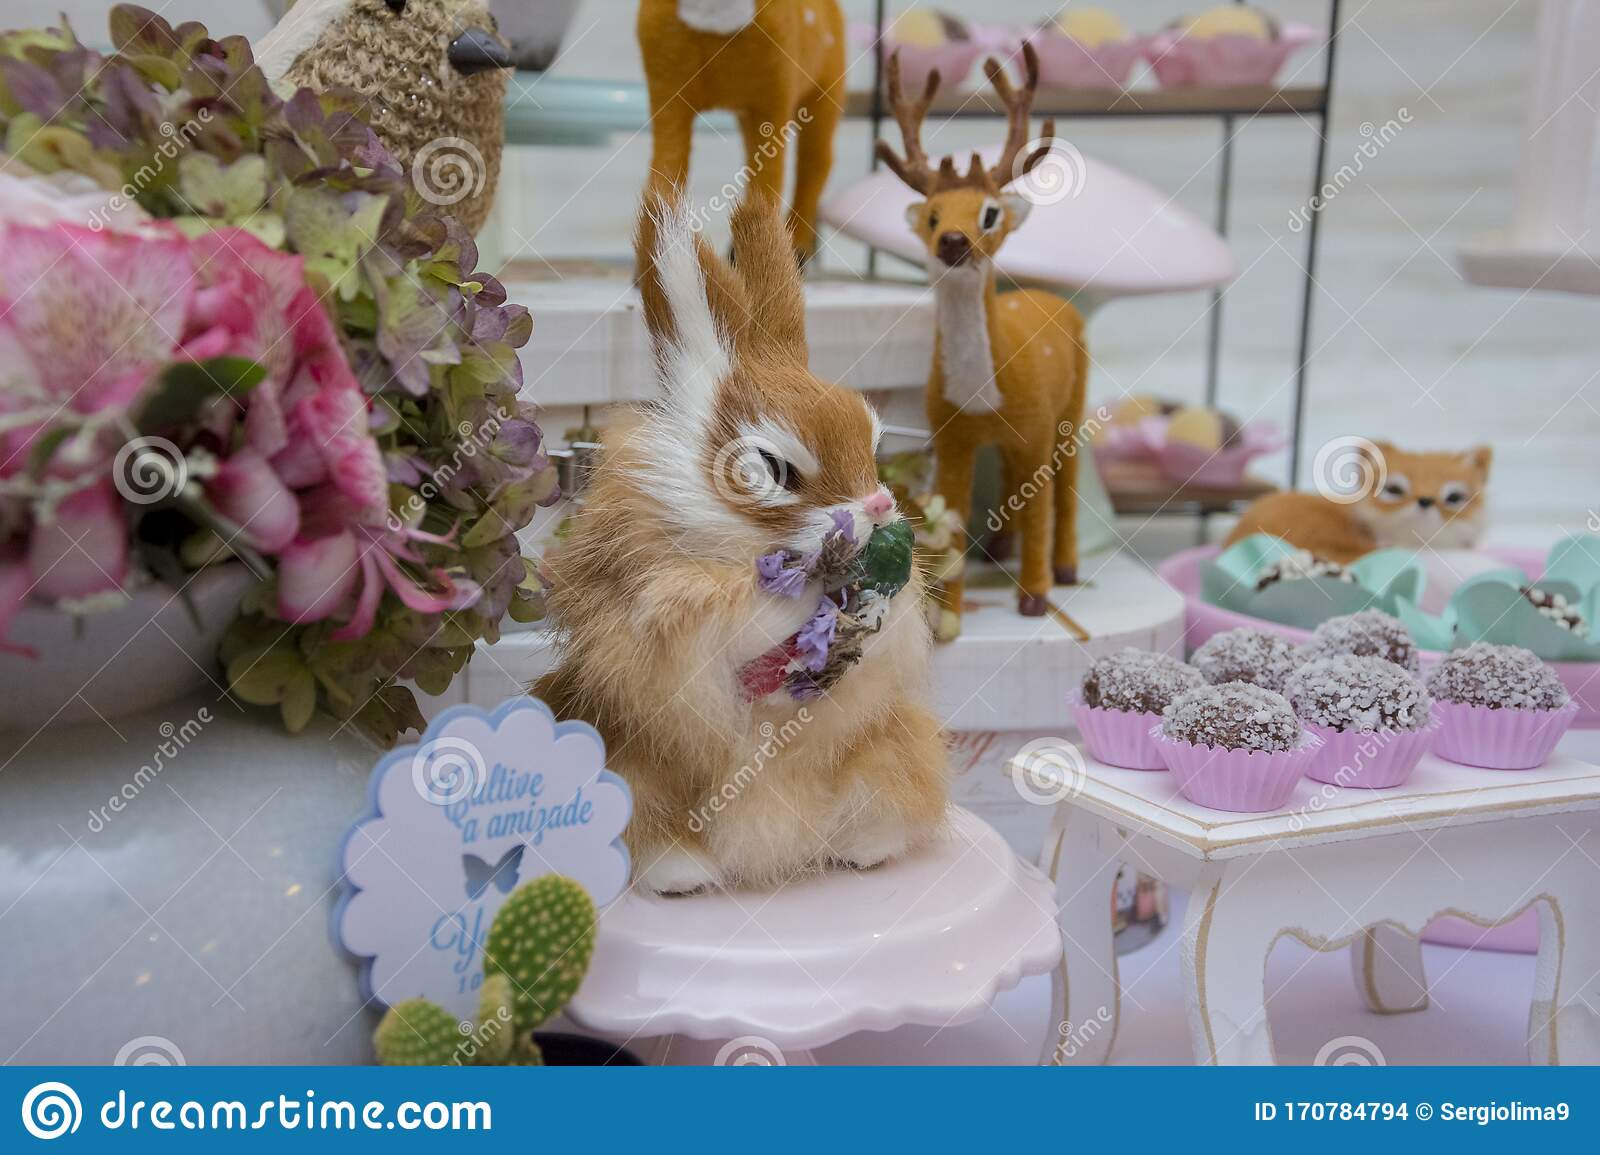 Pleasant Details Of Luxurious Table Of Sweets And Birthday Cake Stock Photo Funny Birthday Cards Online Chimdamsfinfo